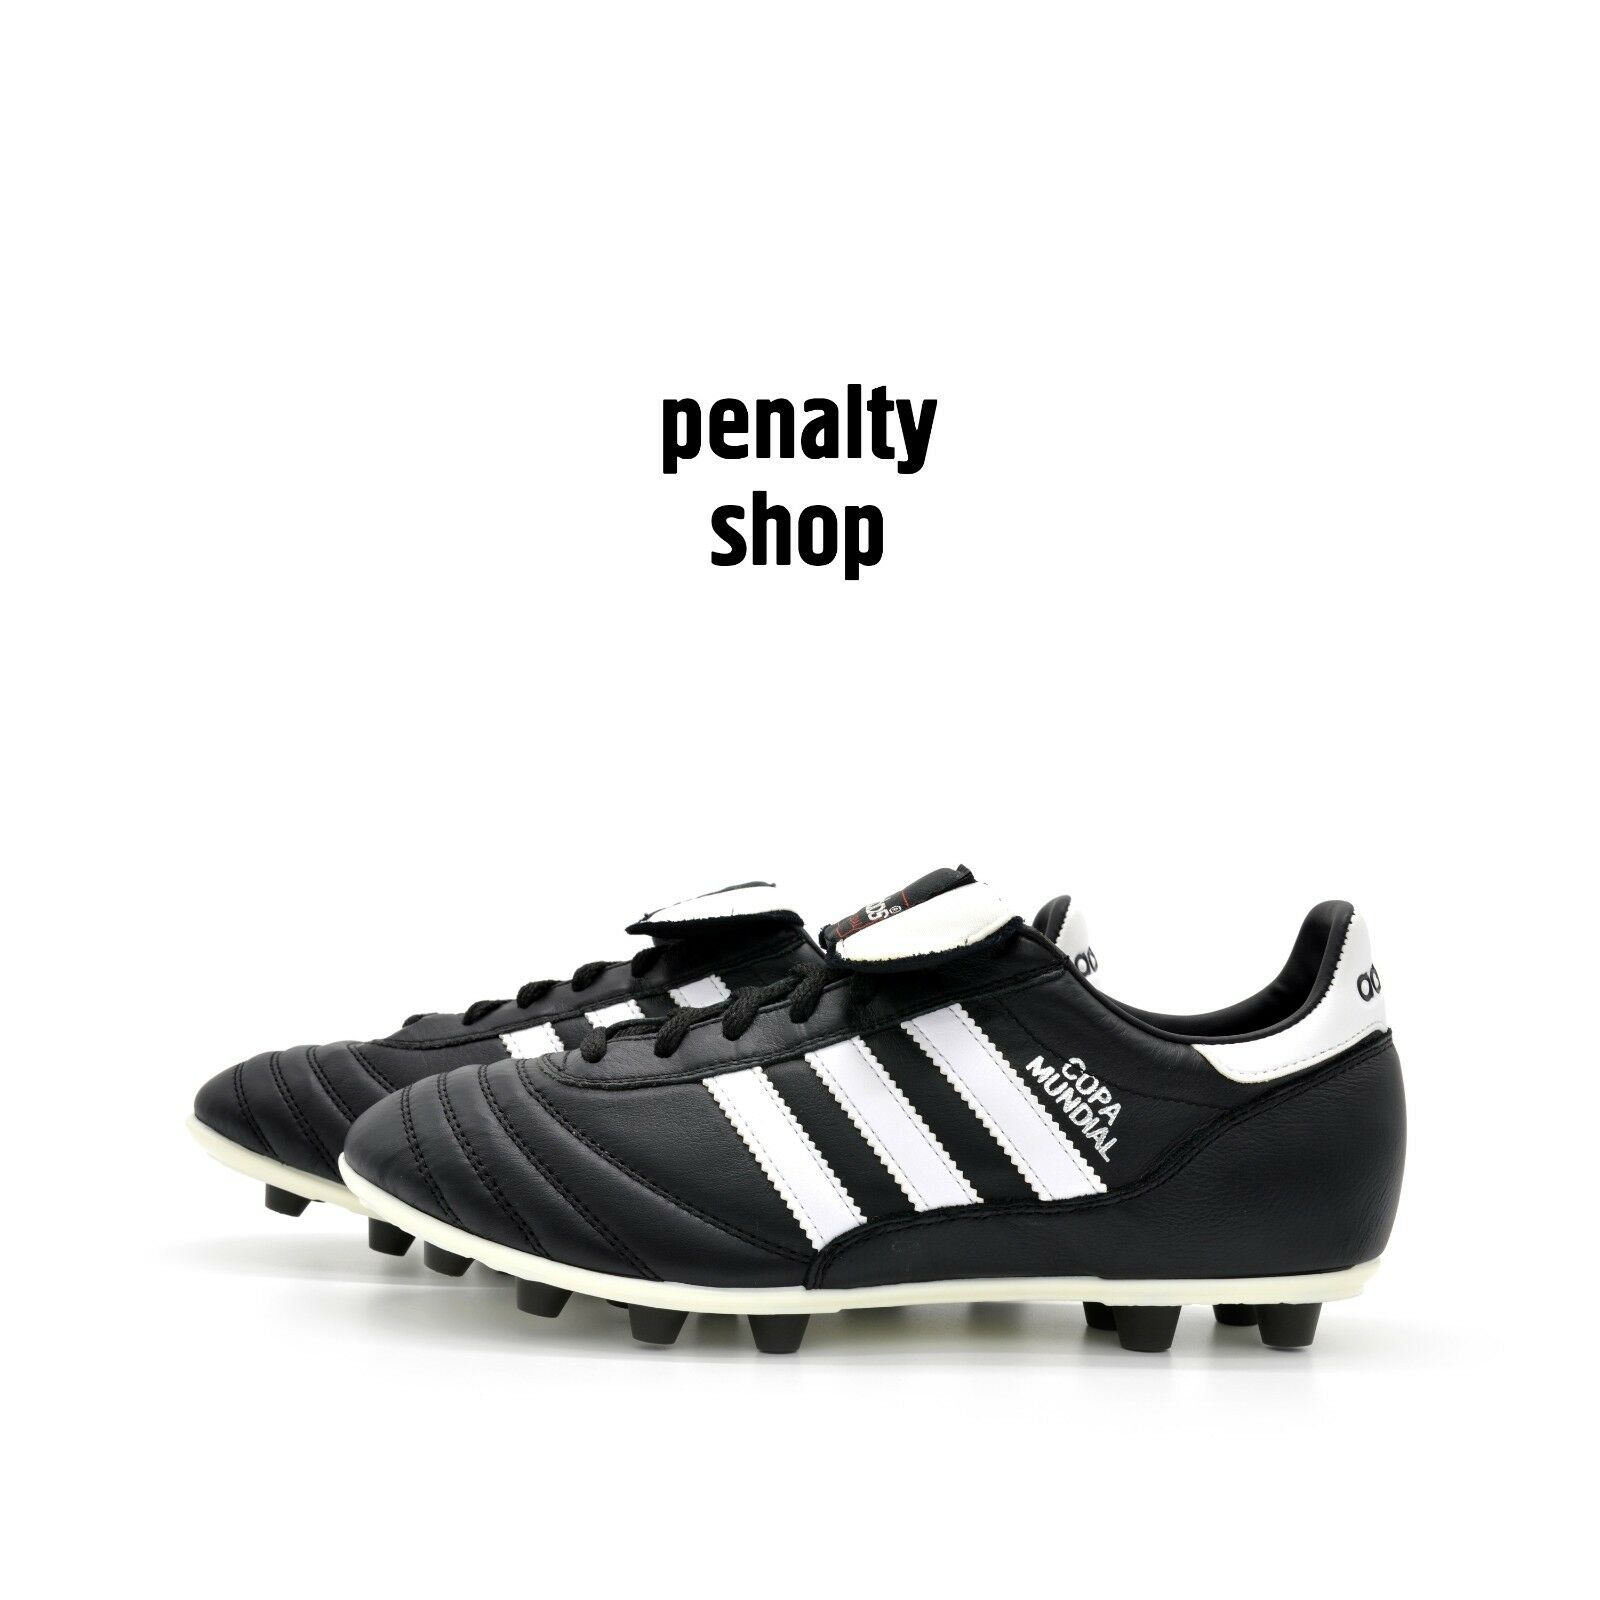 Made 015110 Mundial Copa Adidas in RARE Edition Limited